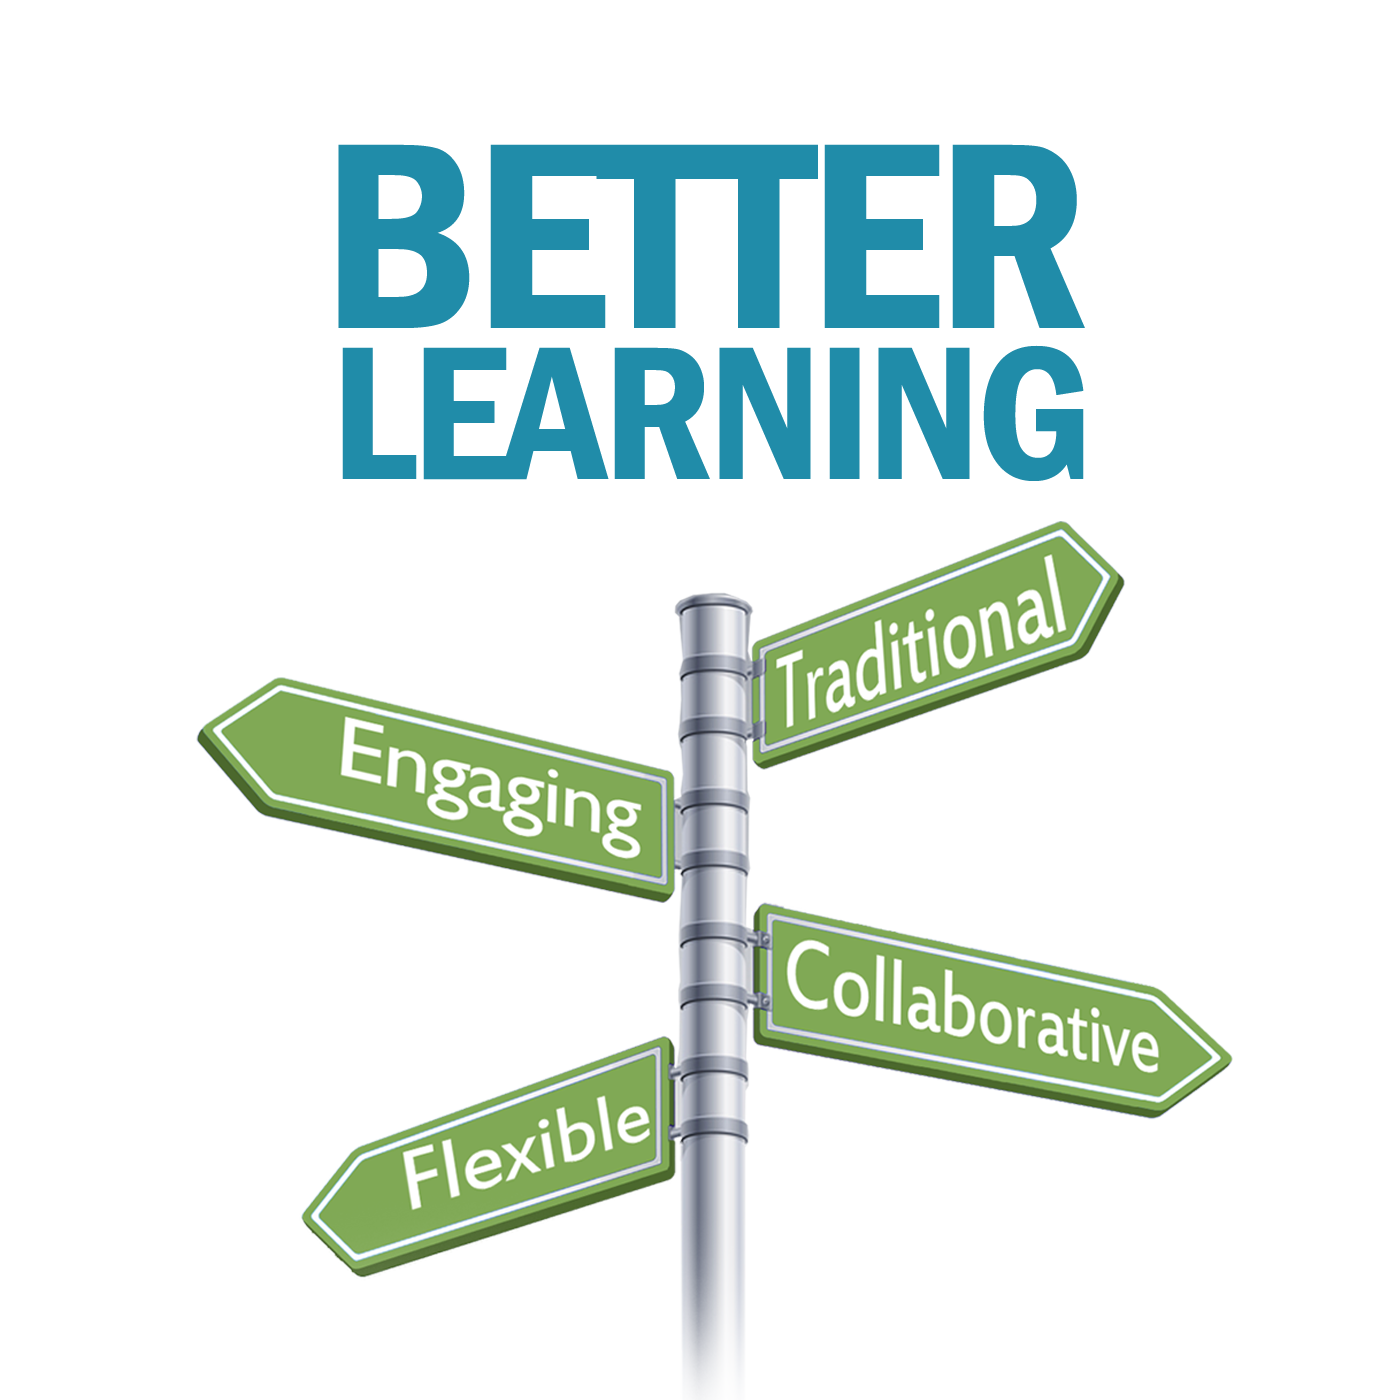 - The Better Learning Podcast is about improving education at all levels - Schools (public, charter, private, independent), Higher Education, & Corporate/Adult Learning. The major theme is to break down the silos and learn from others doing innovative things in education. We highlight innovative programs & initiatives, lessons learned, improvements to educational space, and real-world tactics while getting a deeper understanding of the people behind the innovation. Our guests include Heads of Schools, Superintendents, Principals, Entrepreneurs, Non-profit leaders and other innovators. Kevin Stoller, CEO of Kay-Twelve.com & author of Creating Better Learning Environments, is the host.